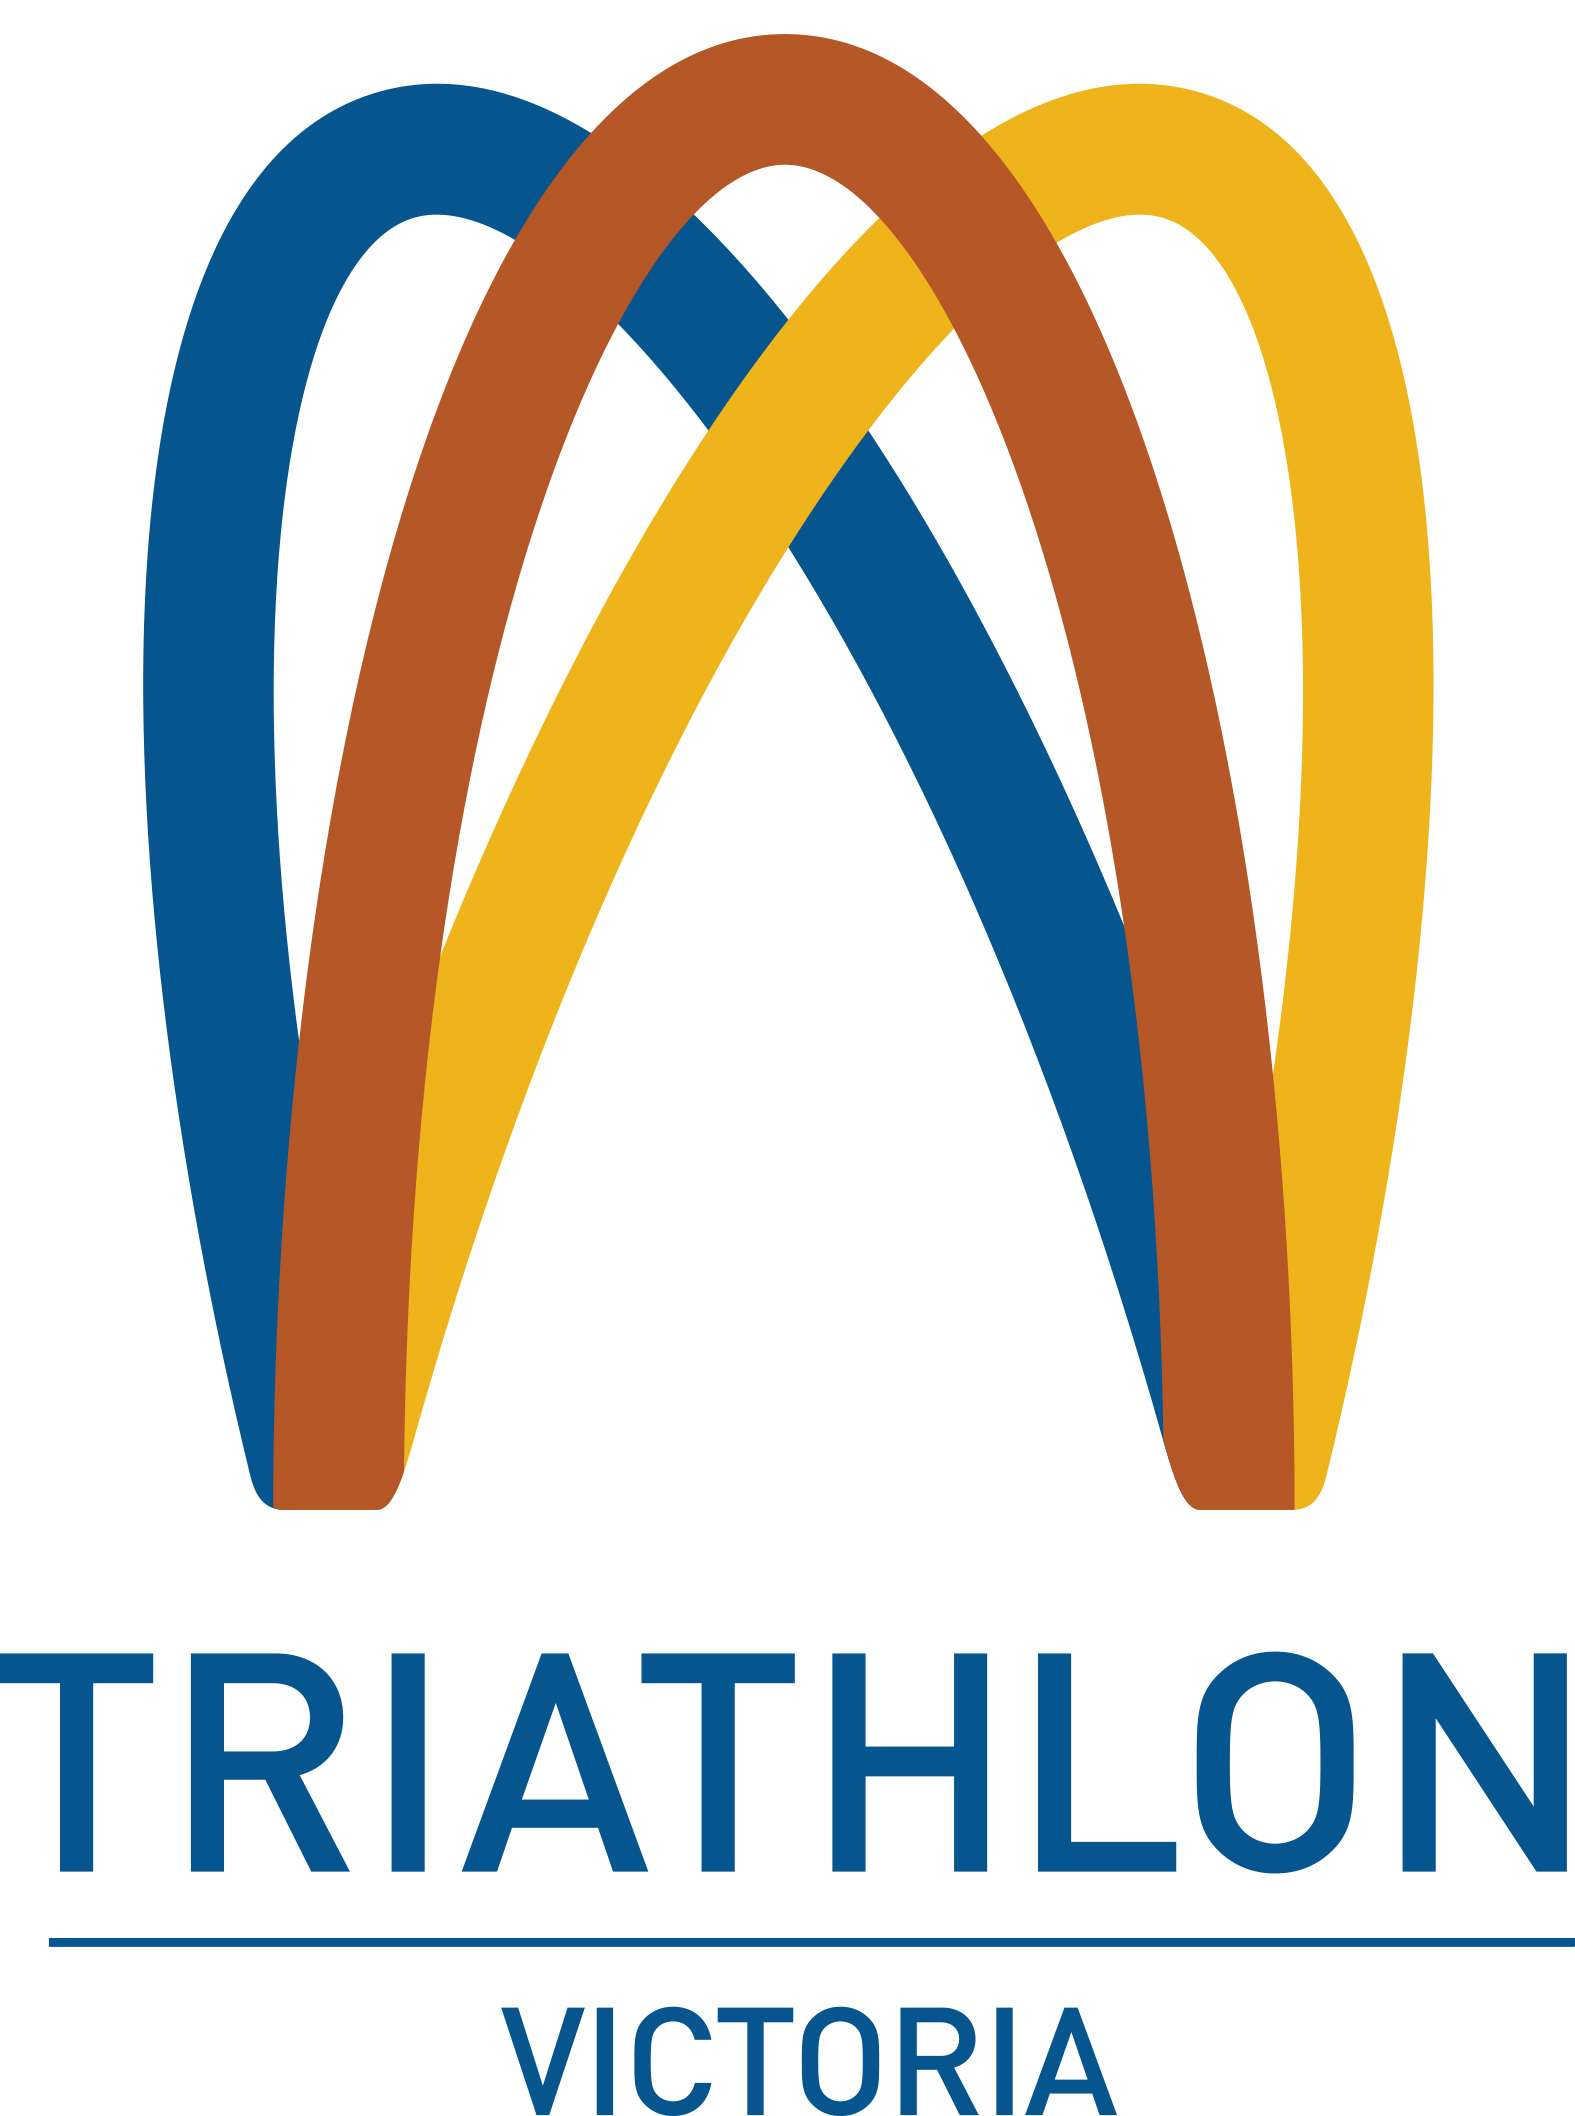 Triathlon VIC